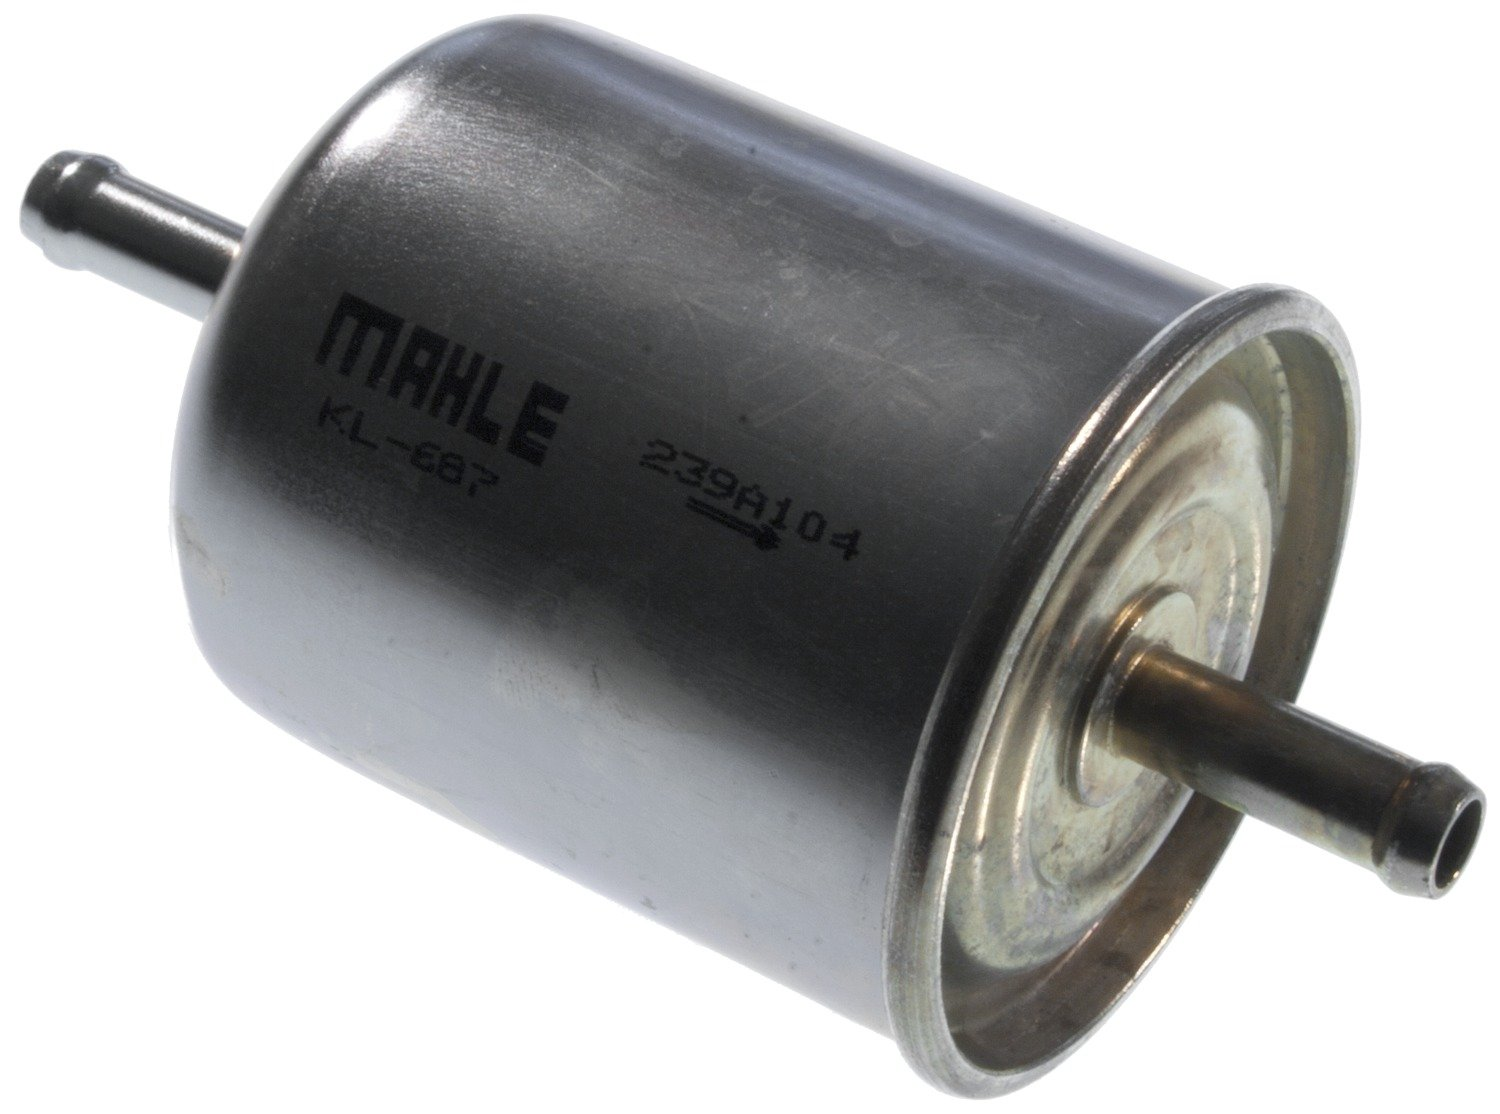 Mahle Original Kl 687 Fuel Filter Automotive 1989 300zx Removal